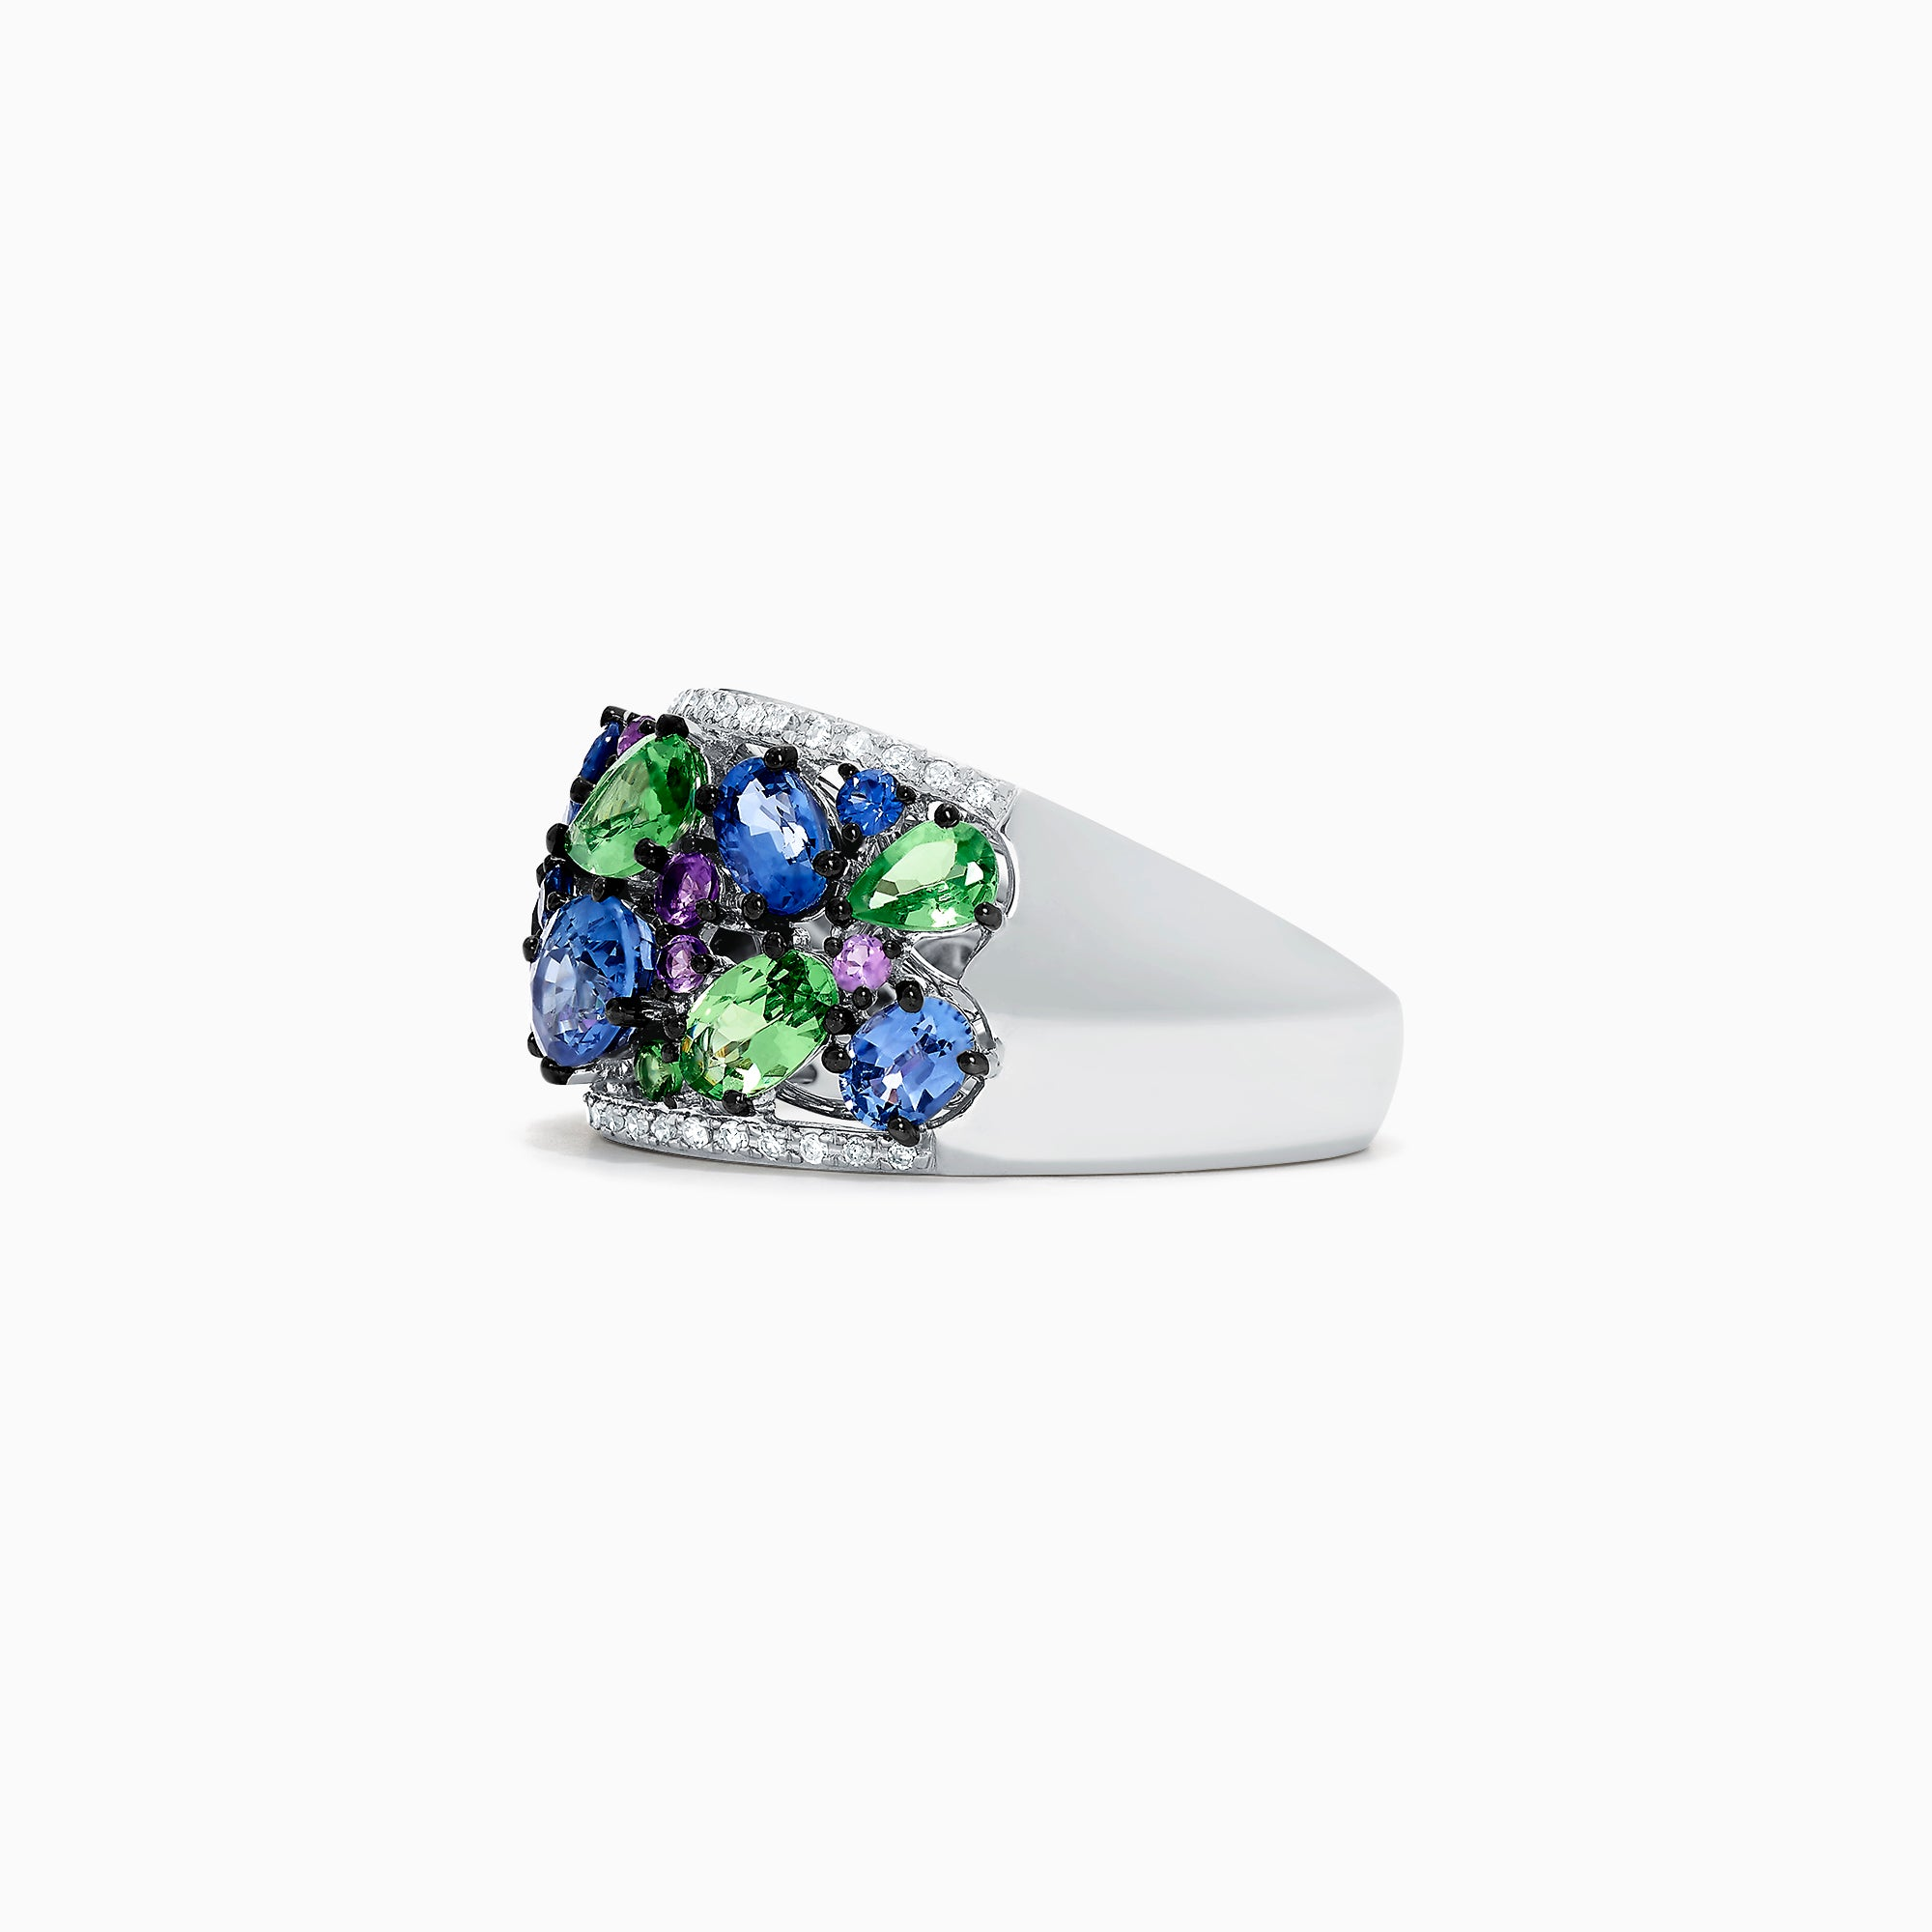 Effy Watercolors 14K White Gold Multi Gemstone and Diamond Ring, 3.52 TCW